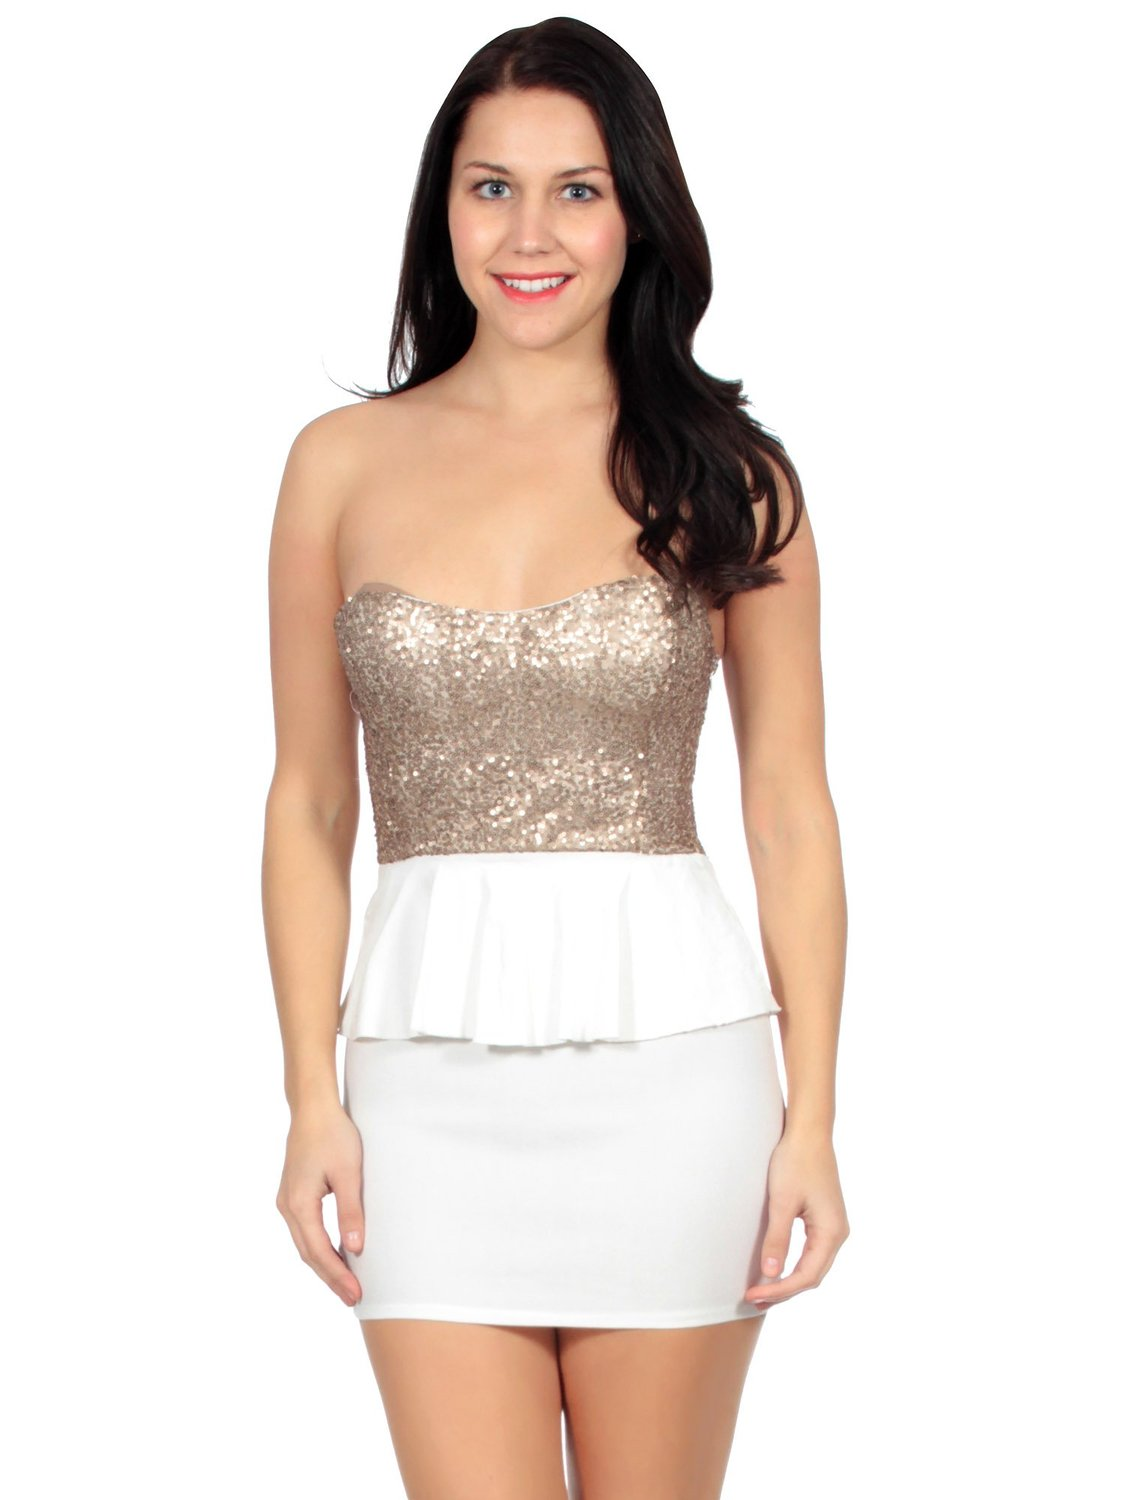 Simplicity Ultrachic Mini Dress w/ Peplum Skirt and Sequined Bustier, White at Amazon Women's Clothing store: